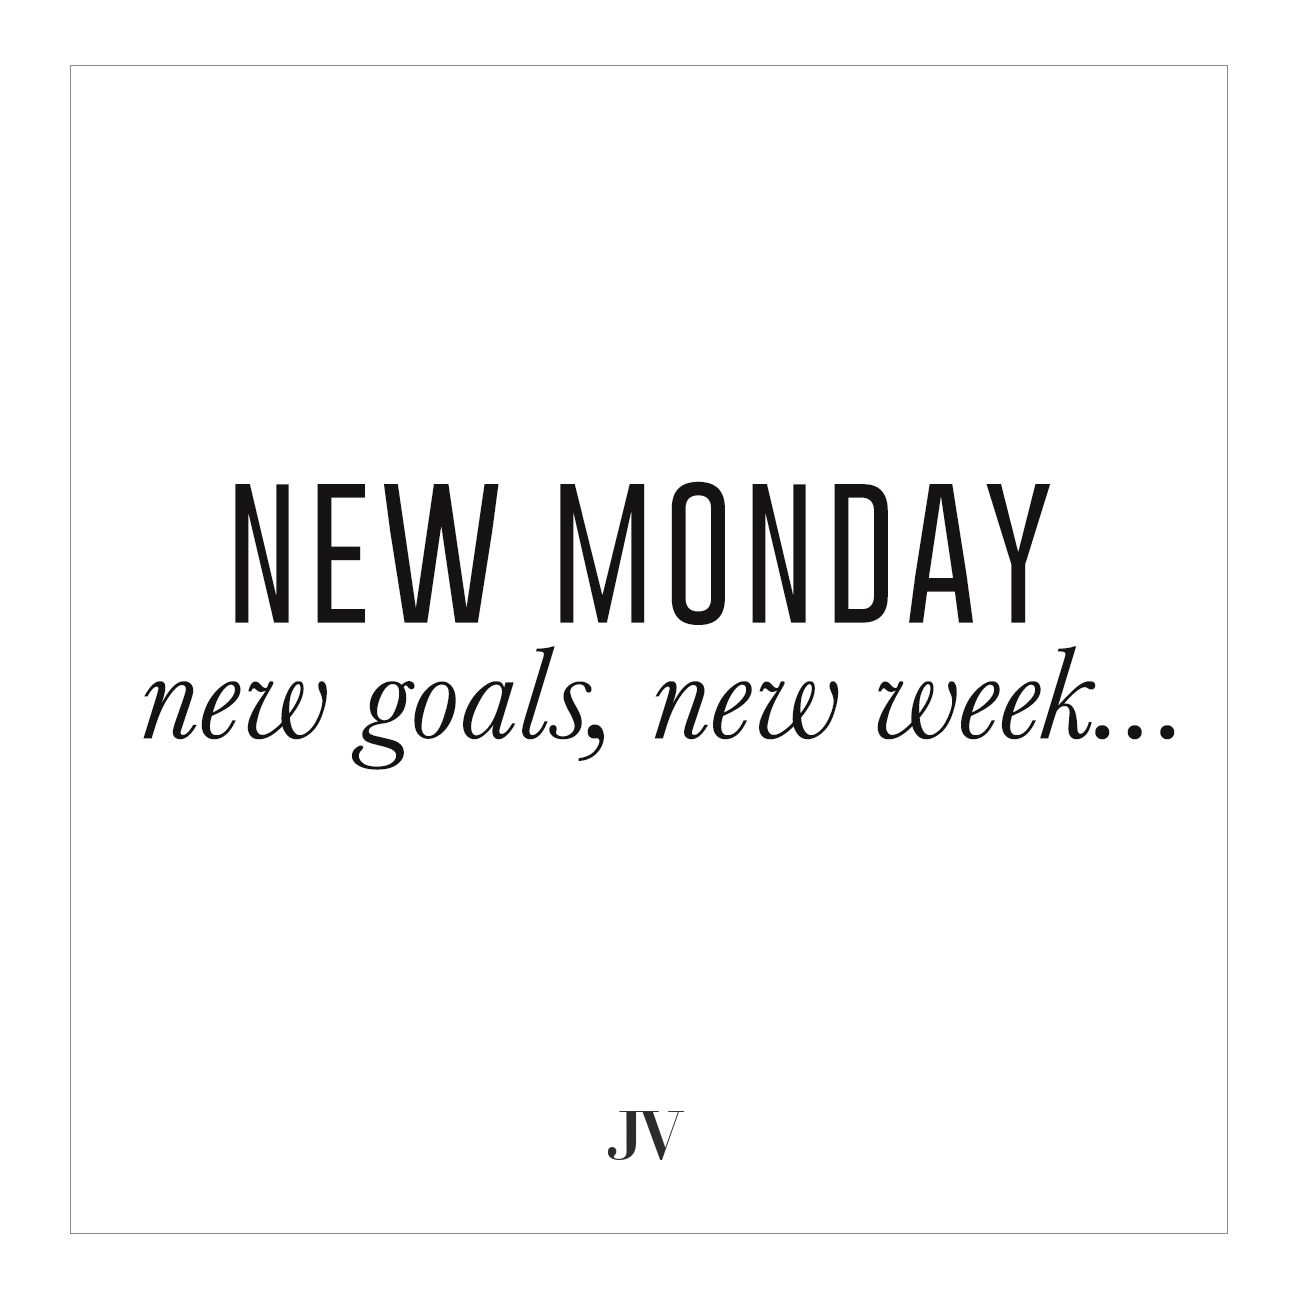 Week Quotes Enchanting Josh V  New Monday New Goals New Week  Quote  Days Of The Week